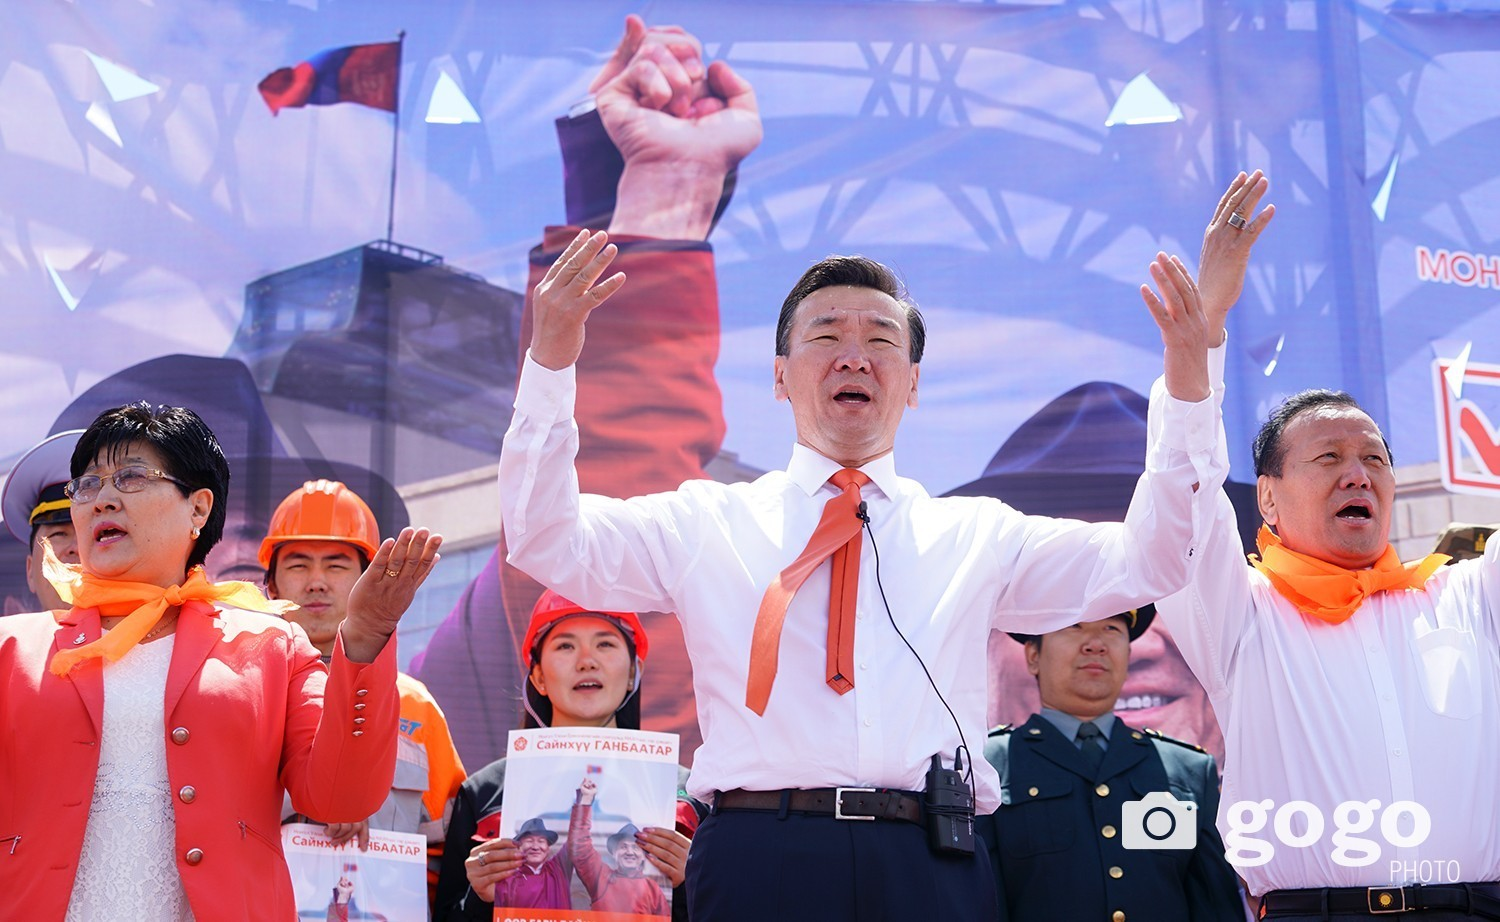 Of mongolia today tomorrow and the development bank of mongolia s - Case Of Presidential Canditate S Ganbaatar To Be Re Investigated The Court Of Bayanzurkh District Decided To Conduct An Additional Investigation On The Case